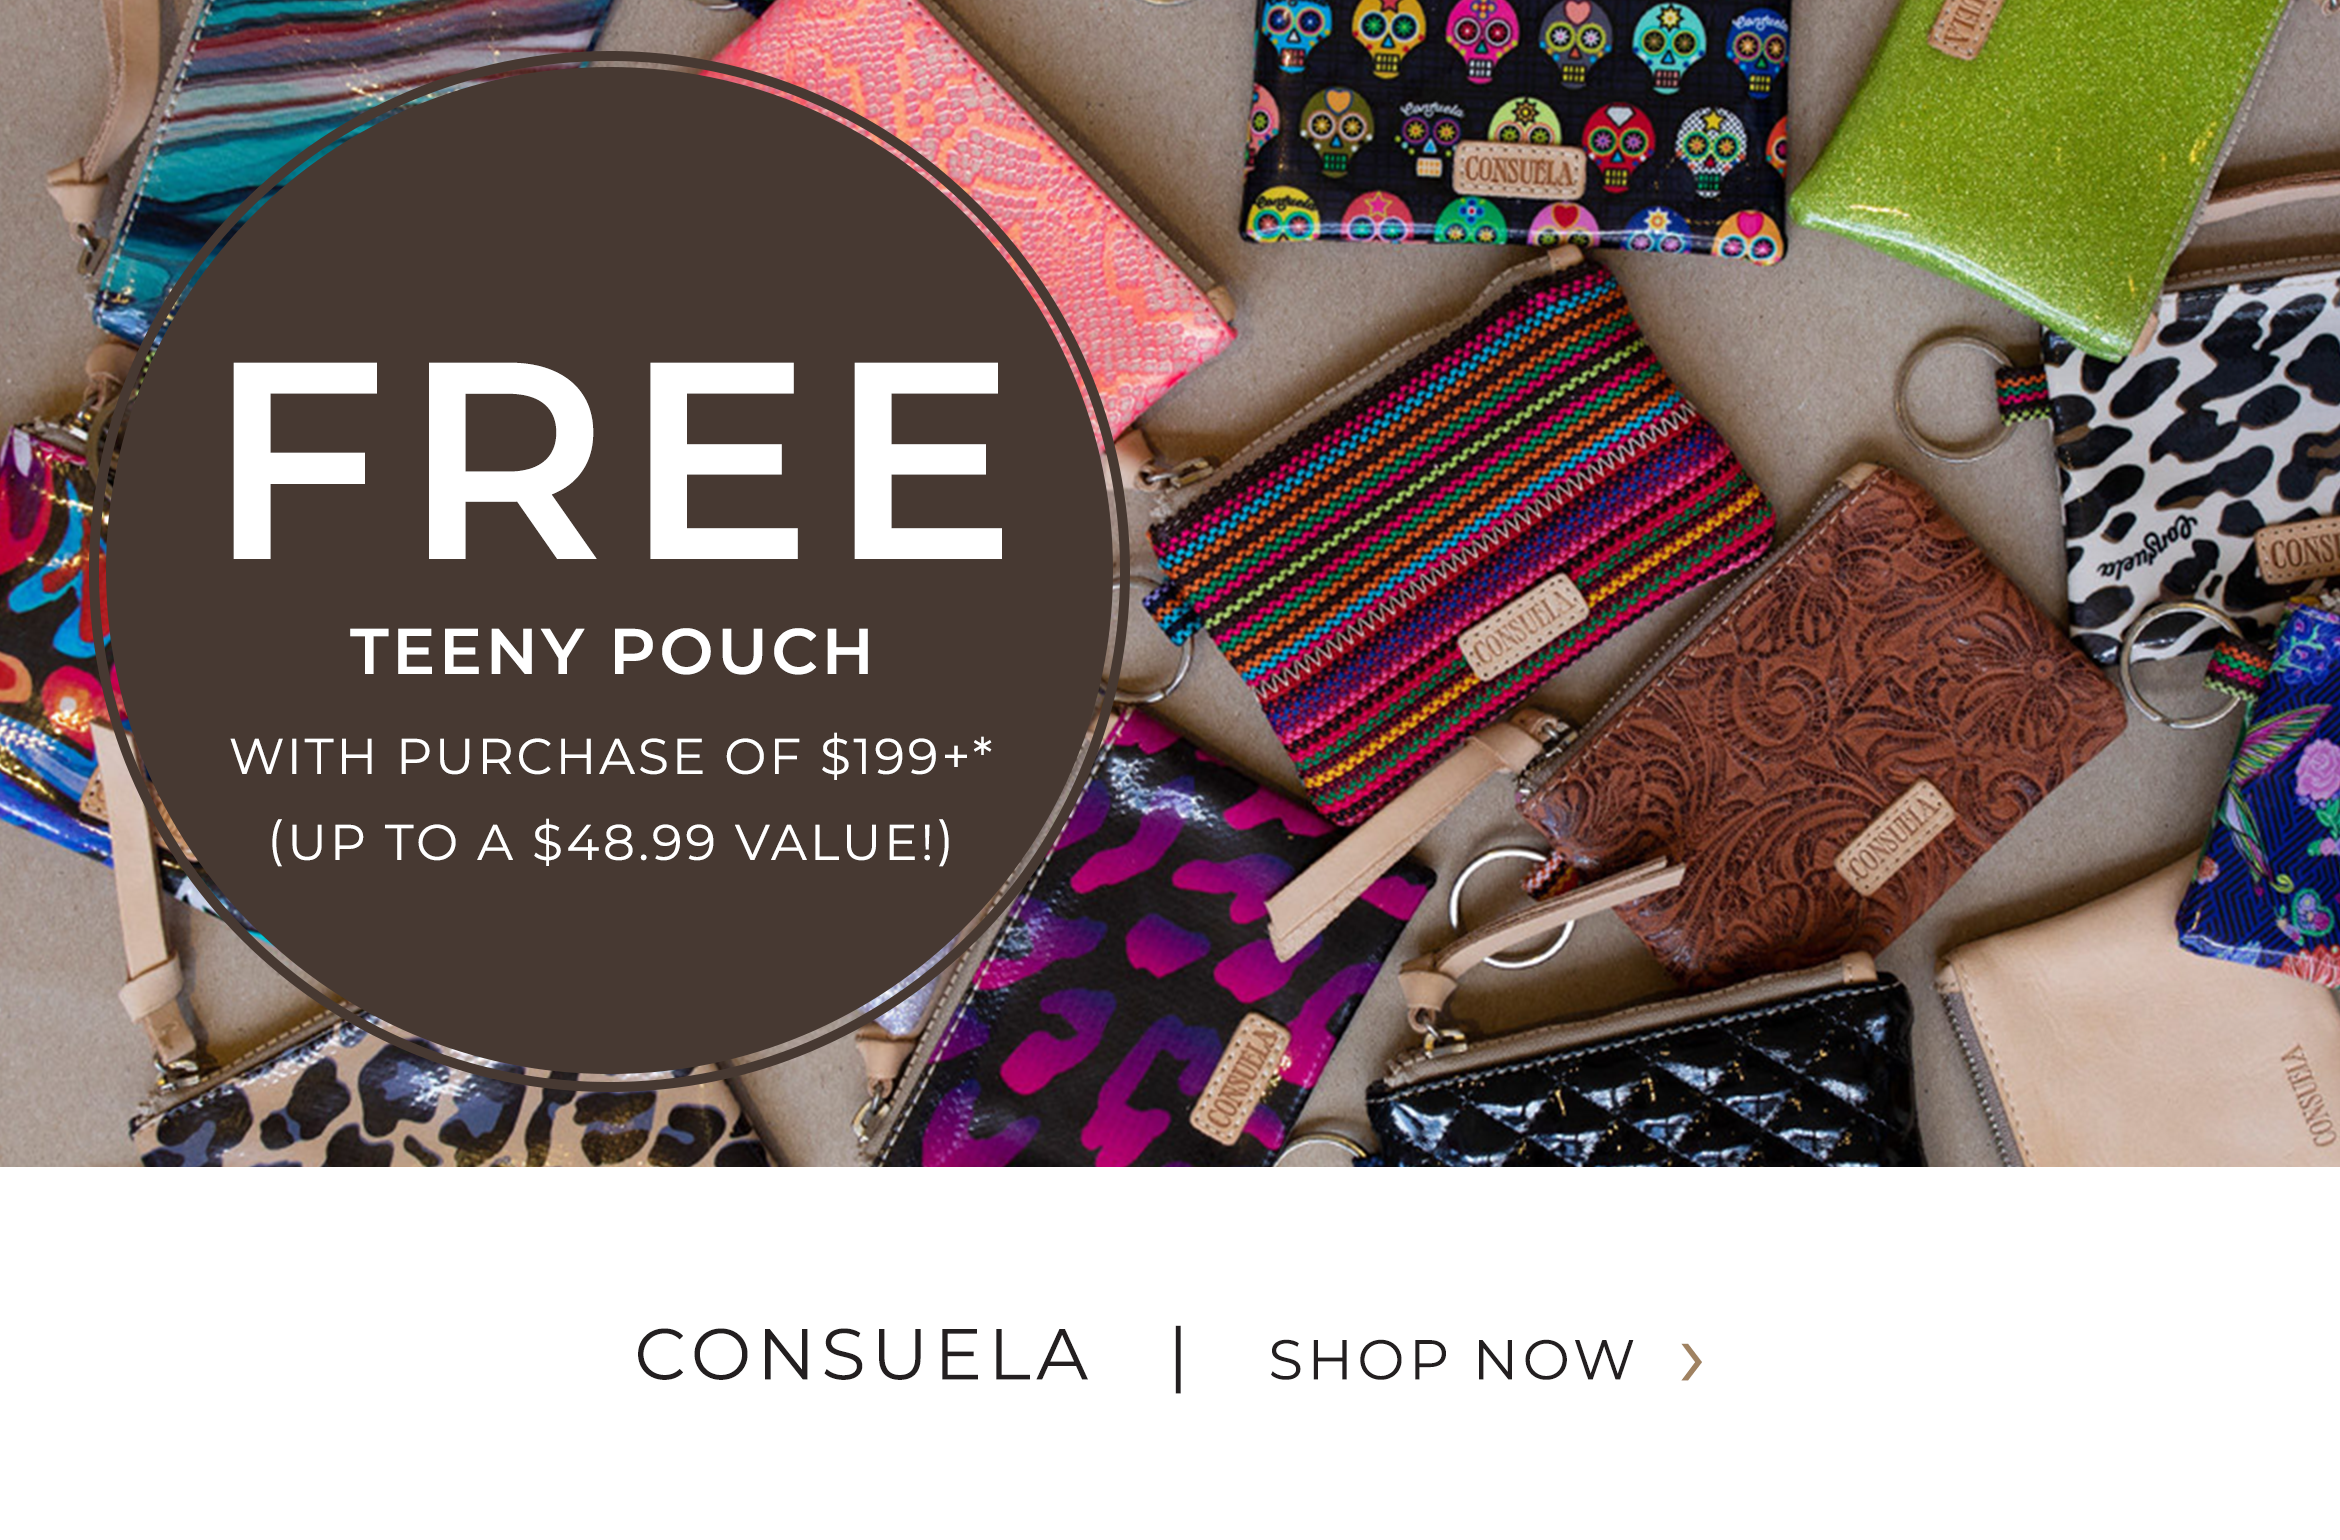 Consuela - FREE Teeny Pouch with purchase of $199+